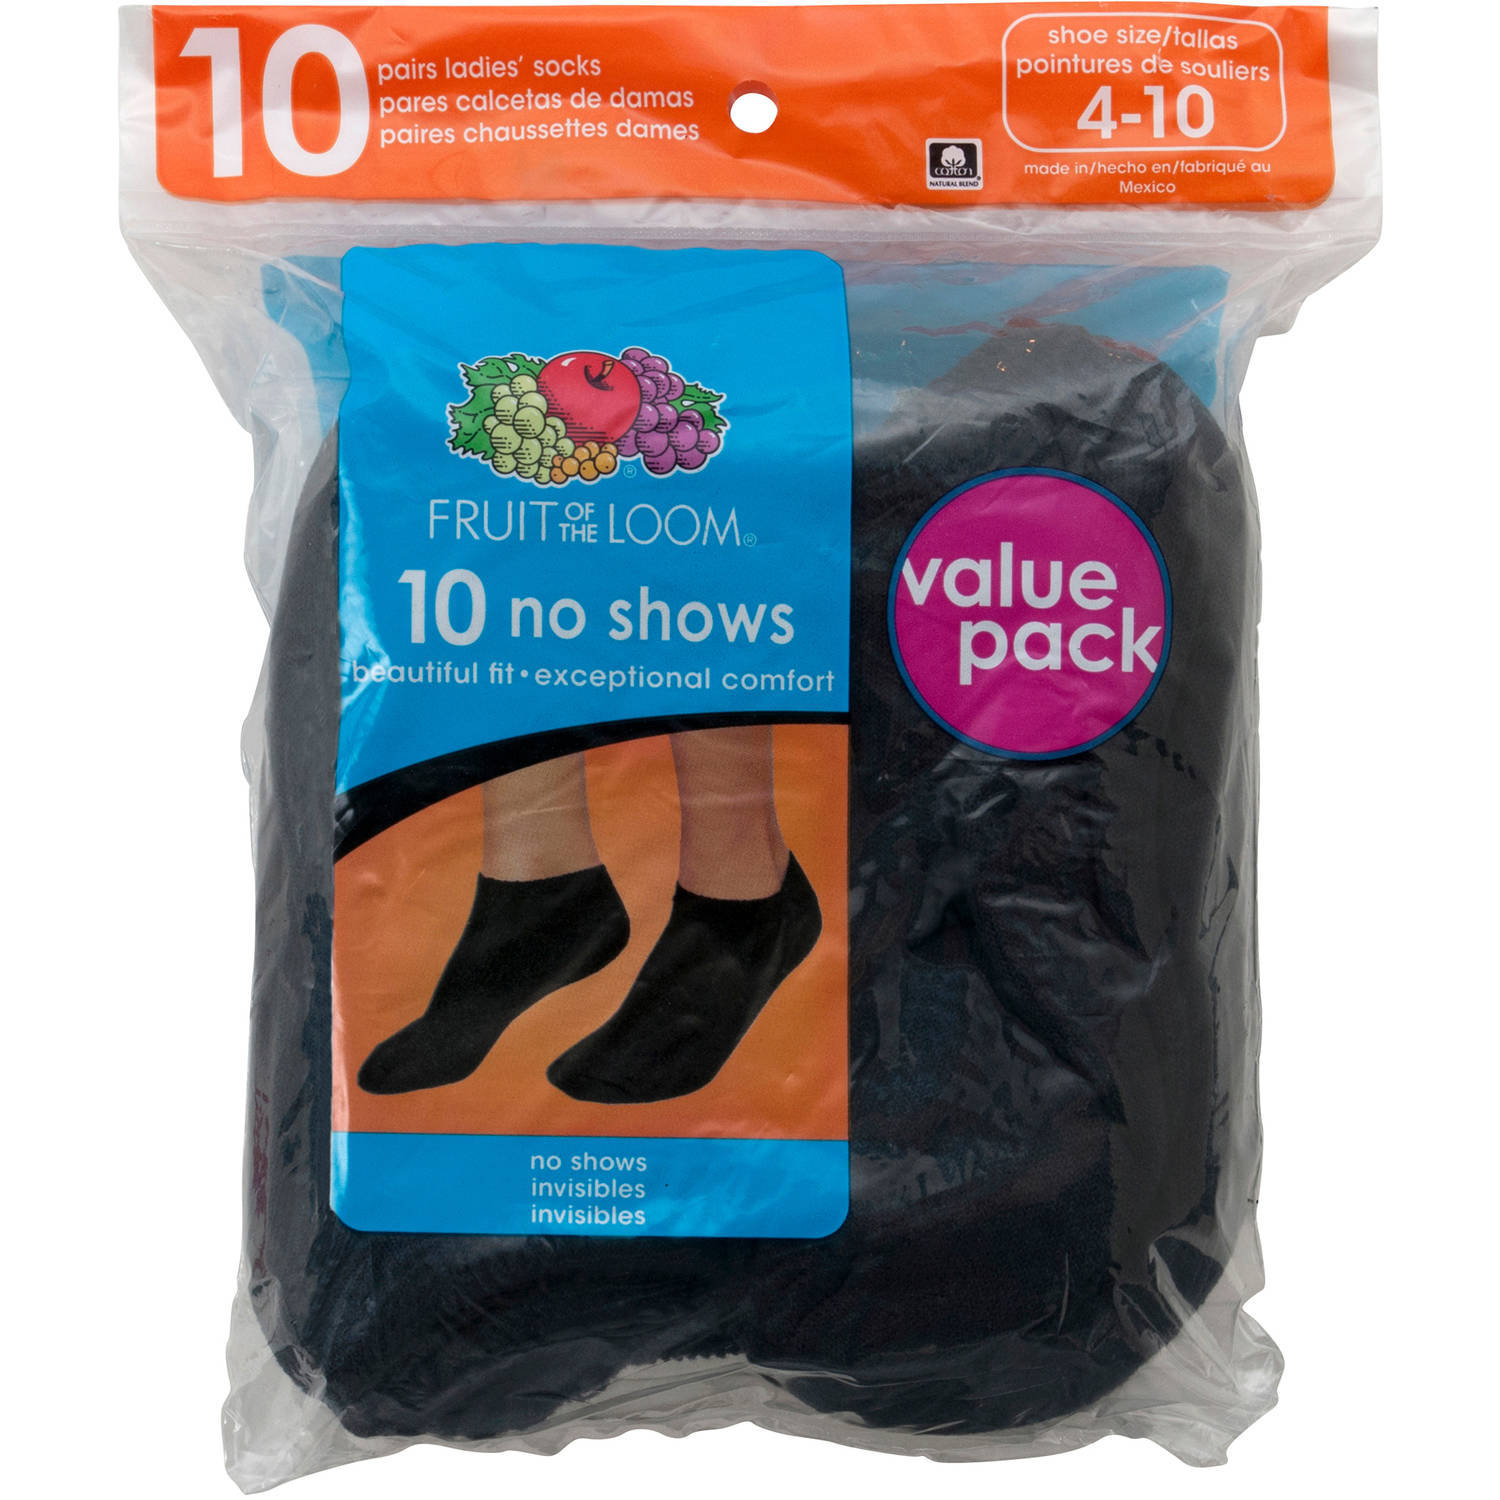 Fruit of the Loom Women's No Show Socks, 10 Pack